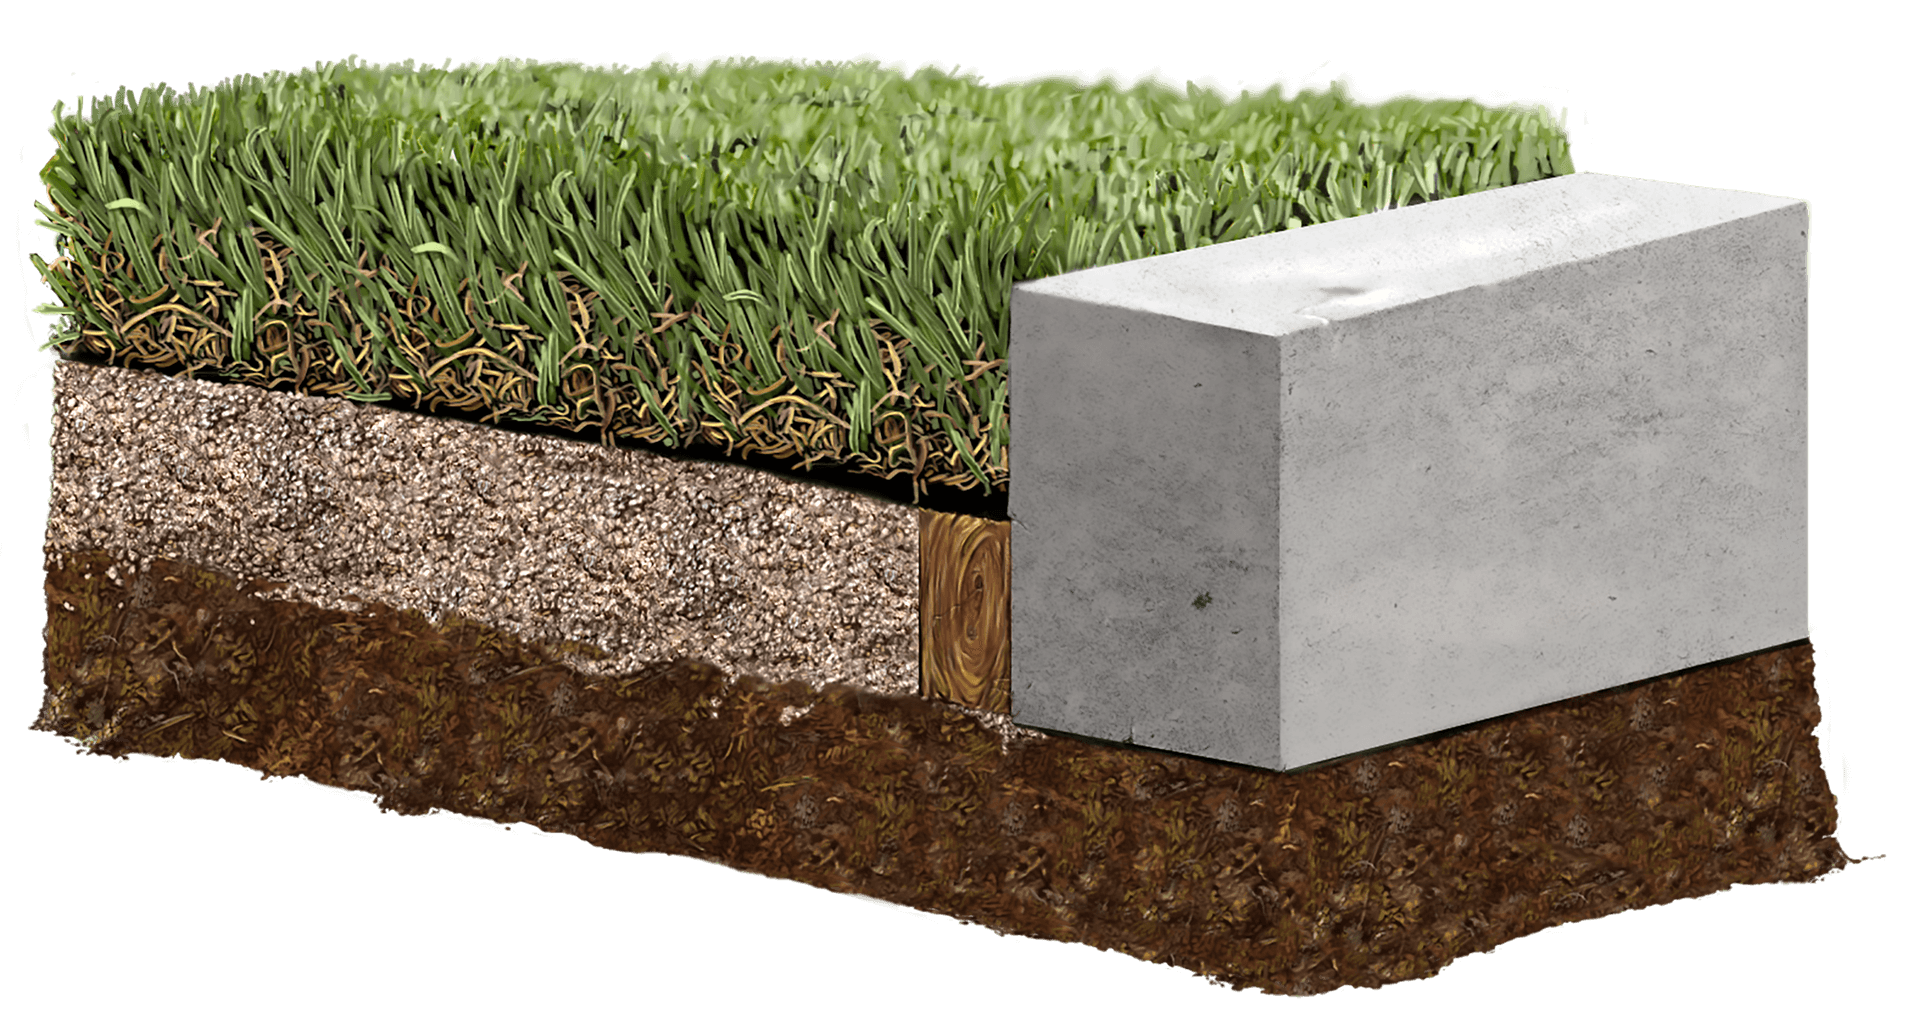 Cutout of artificial turf